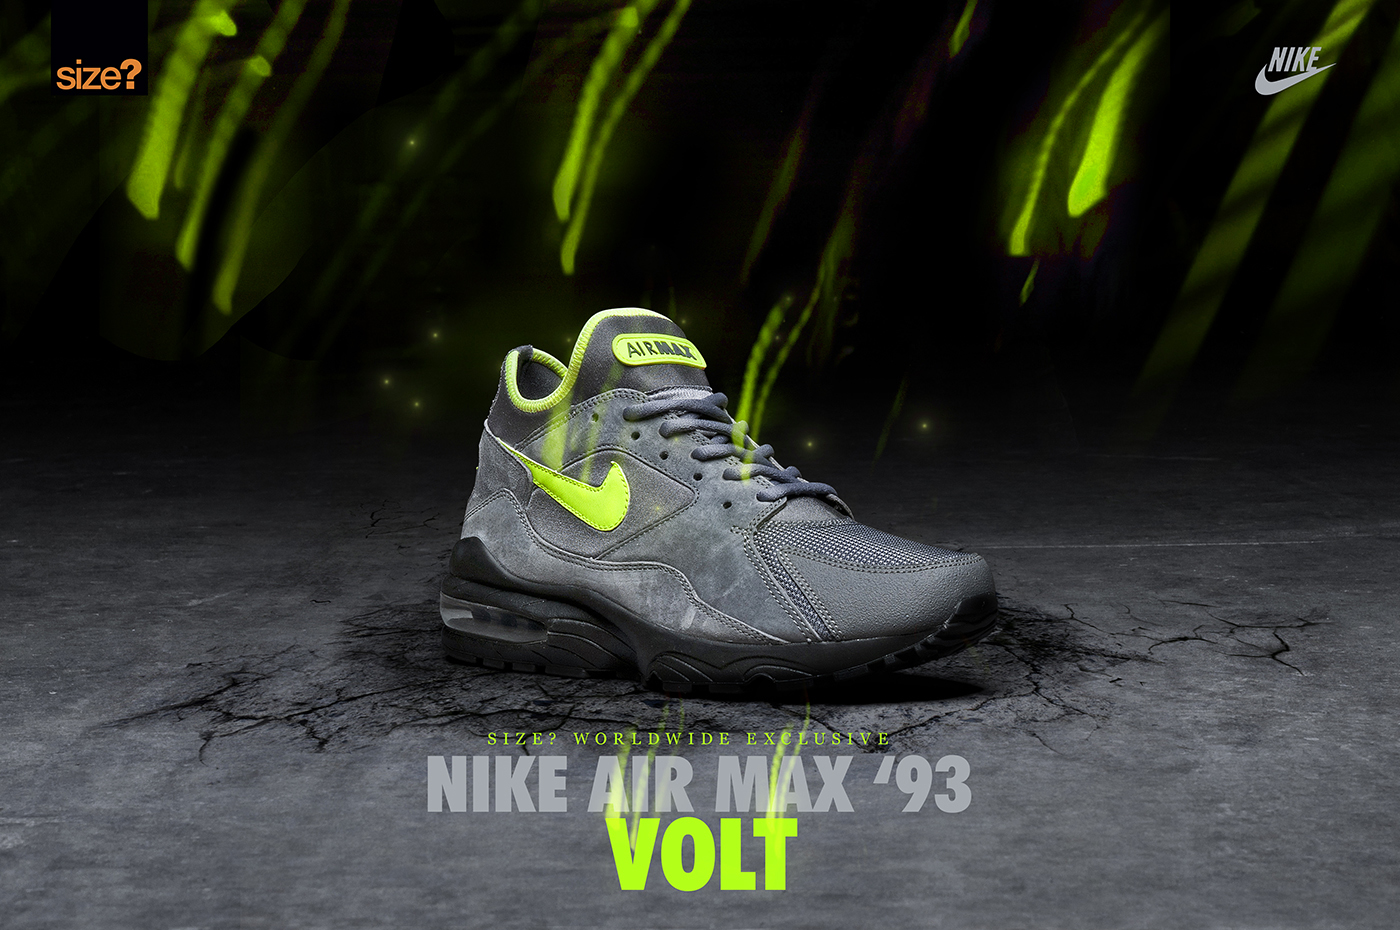 Nike Air Max 93 Volt Hero Image